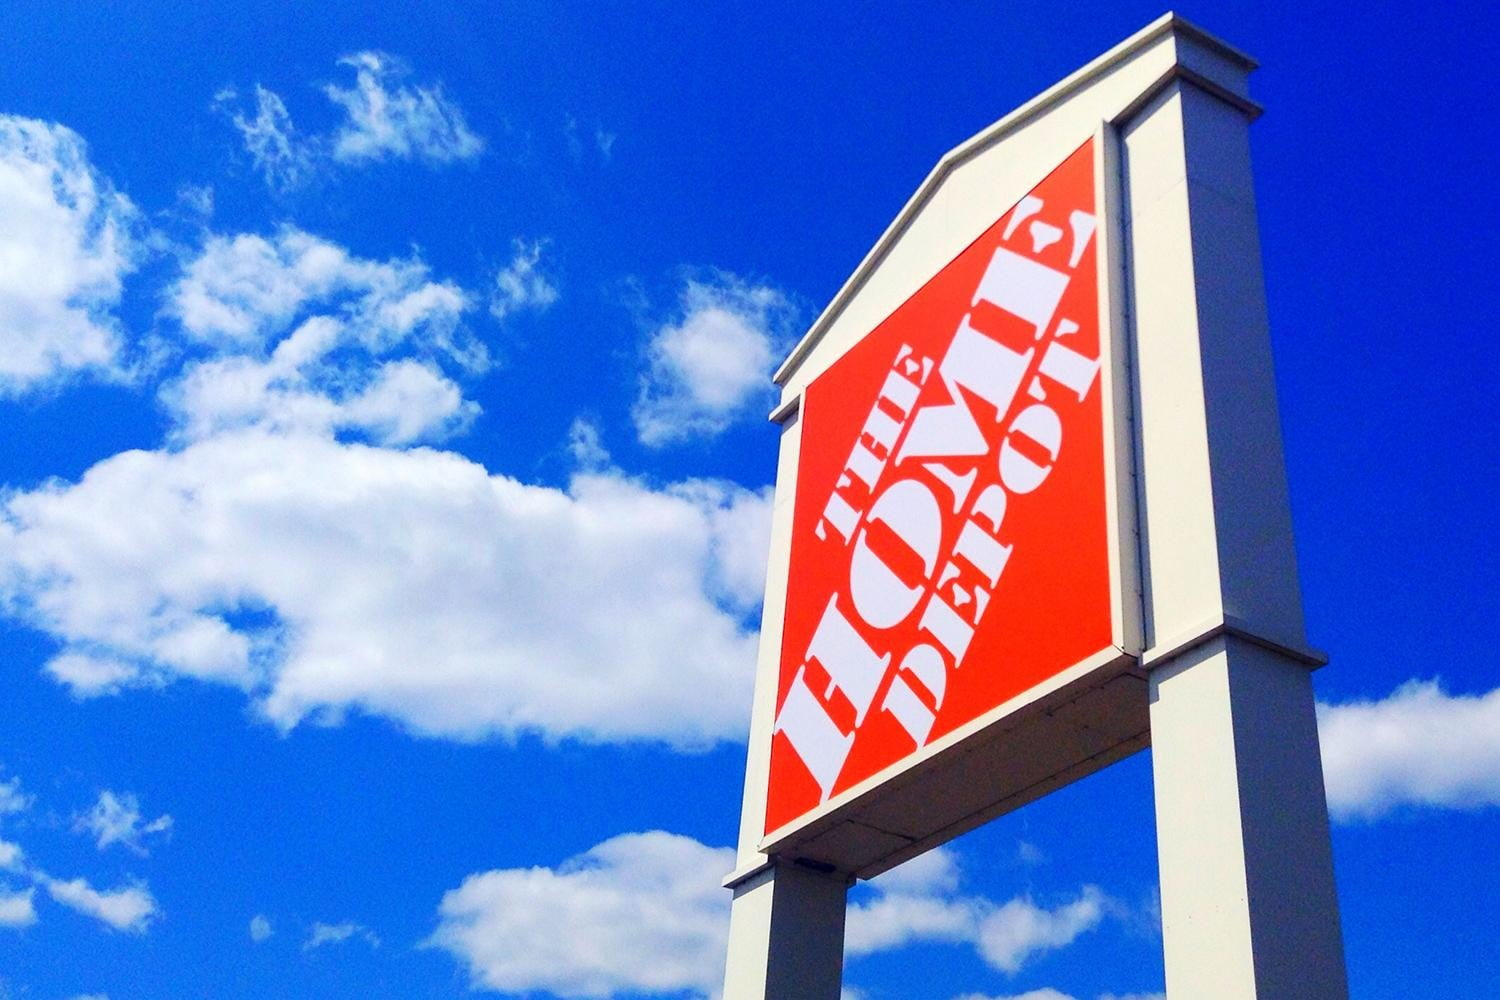 Home Depot Memorial Day Sale: Save on Grills, Tools, and